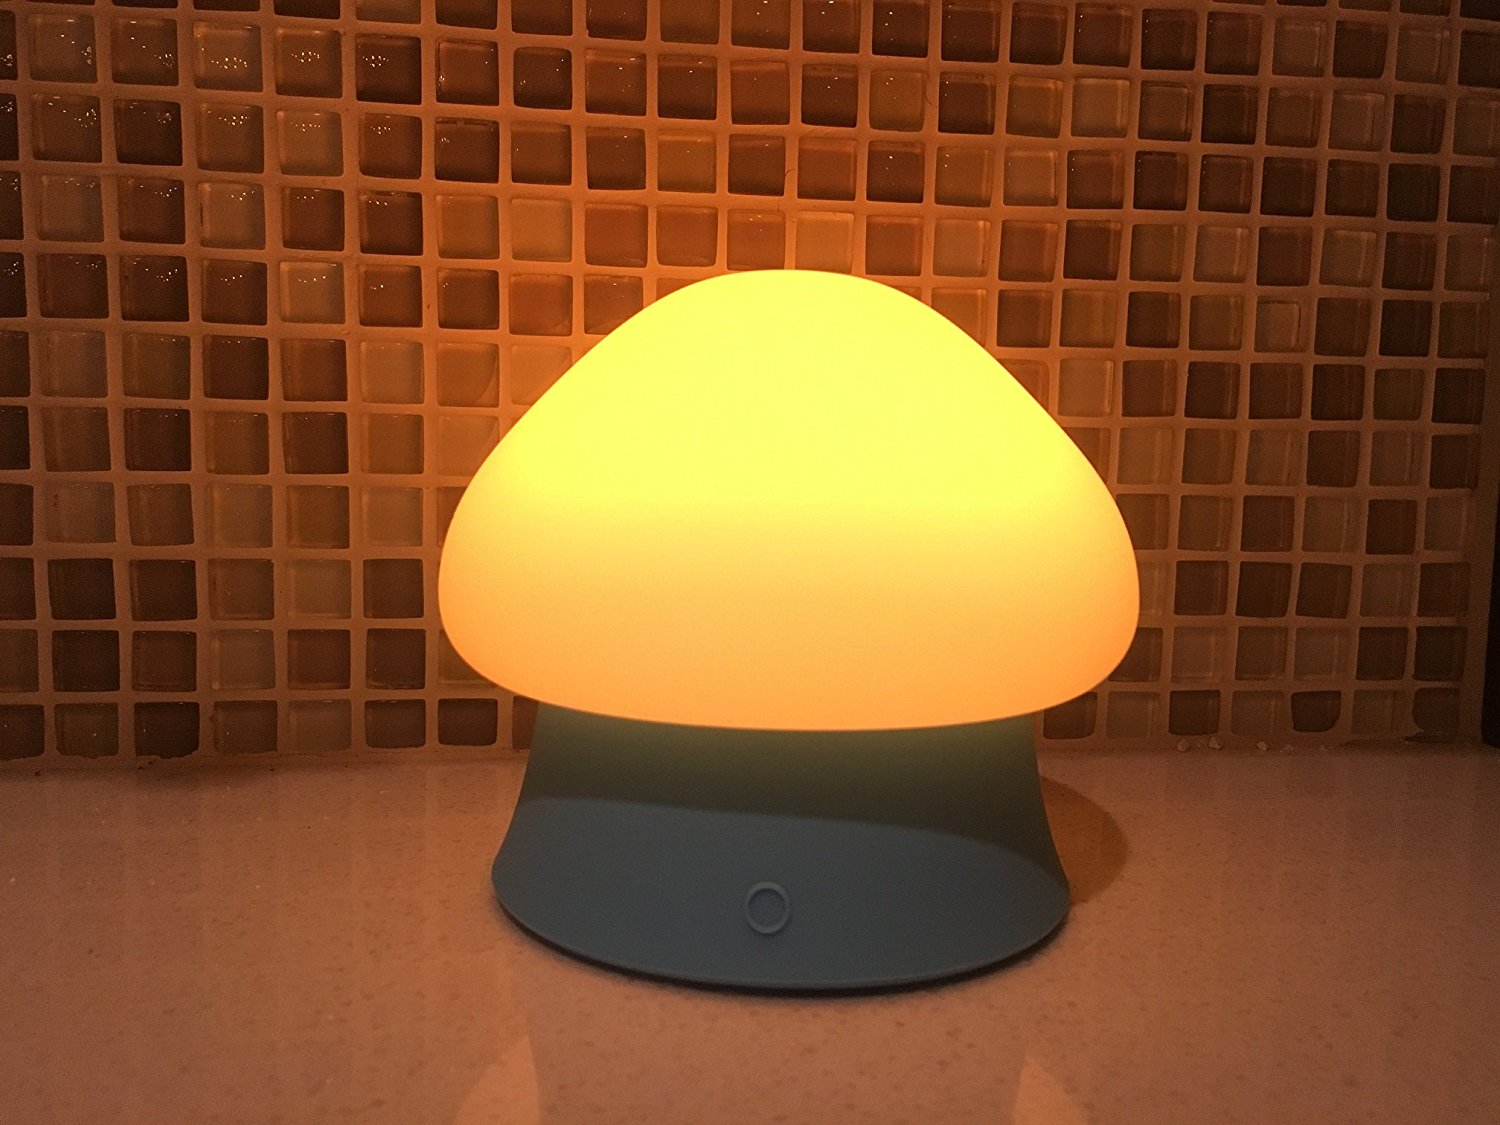 Soft Silicone Baby Nursery Lamp with Vibration Control BPA-Free for Baby Kids Bedroom and Nursery-Blue Amber Light First O-Lite OLED Children Night Light with Music